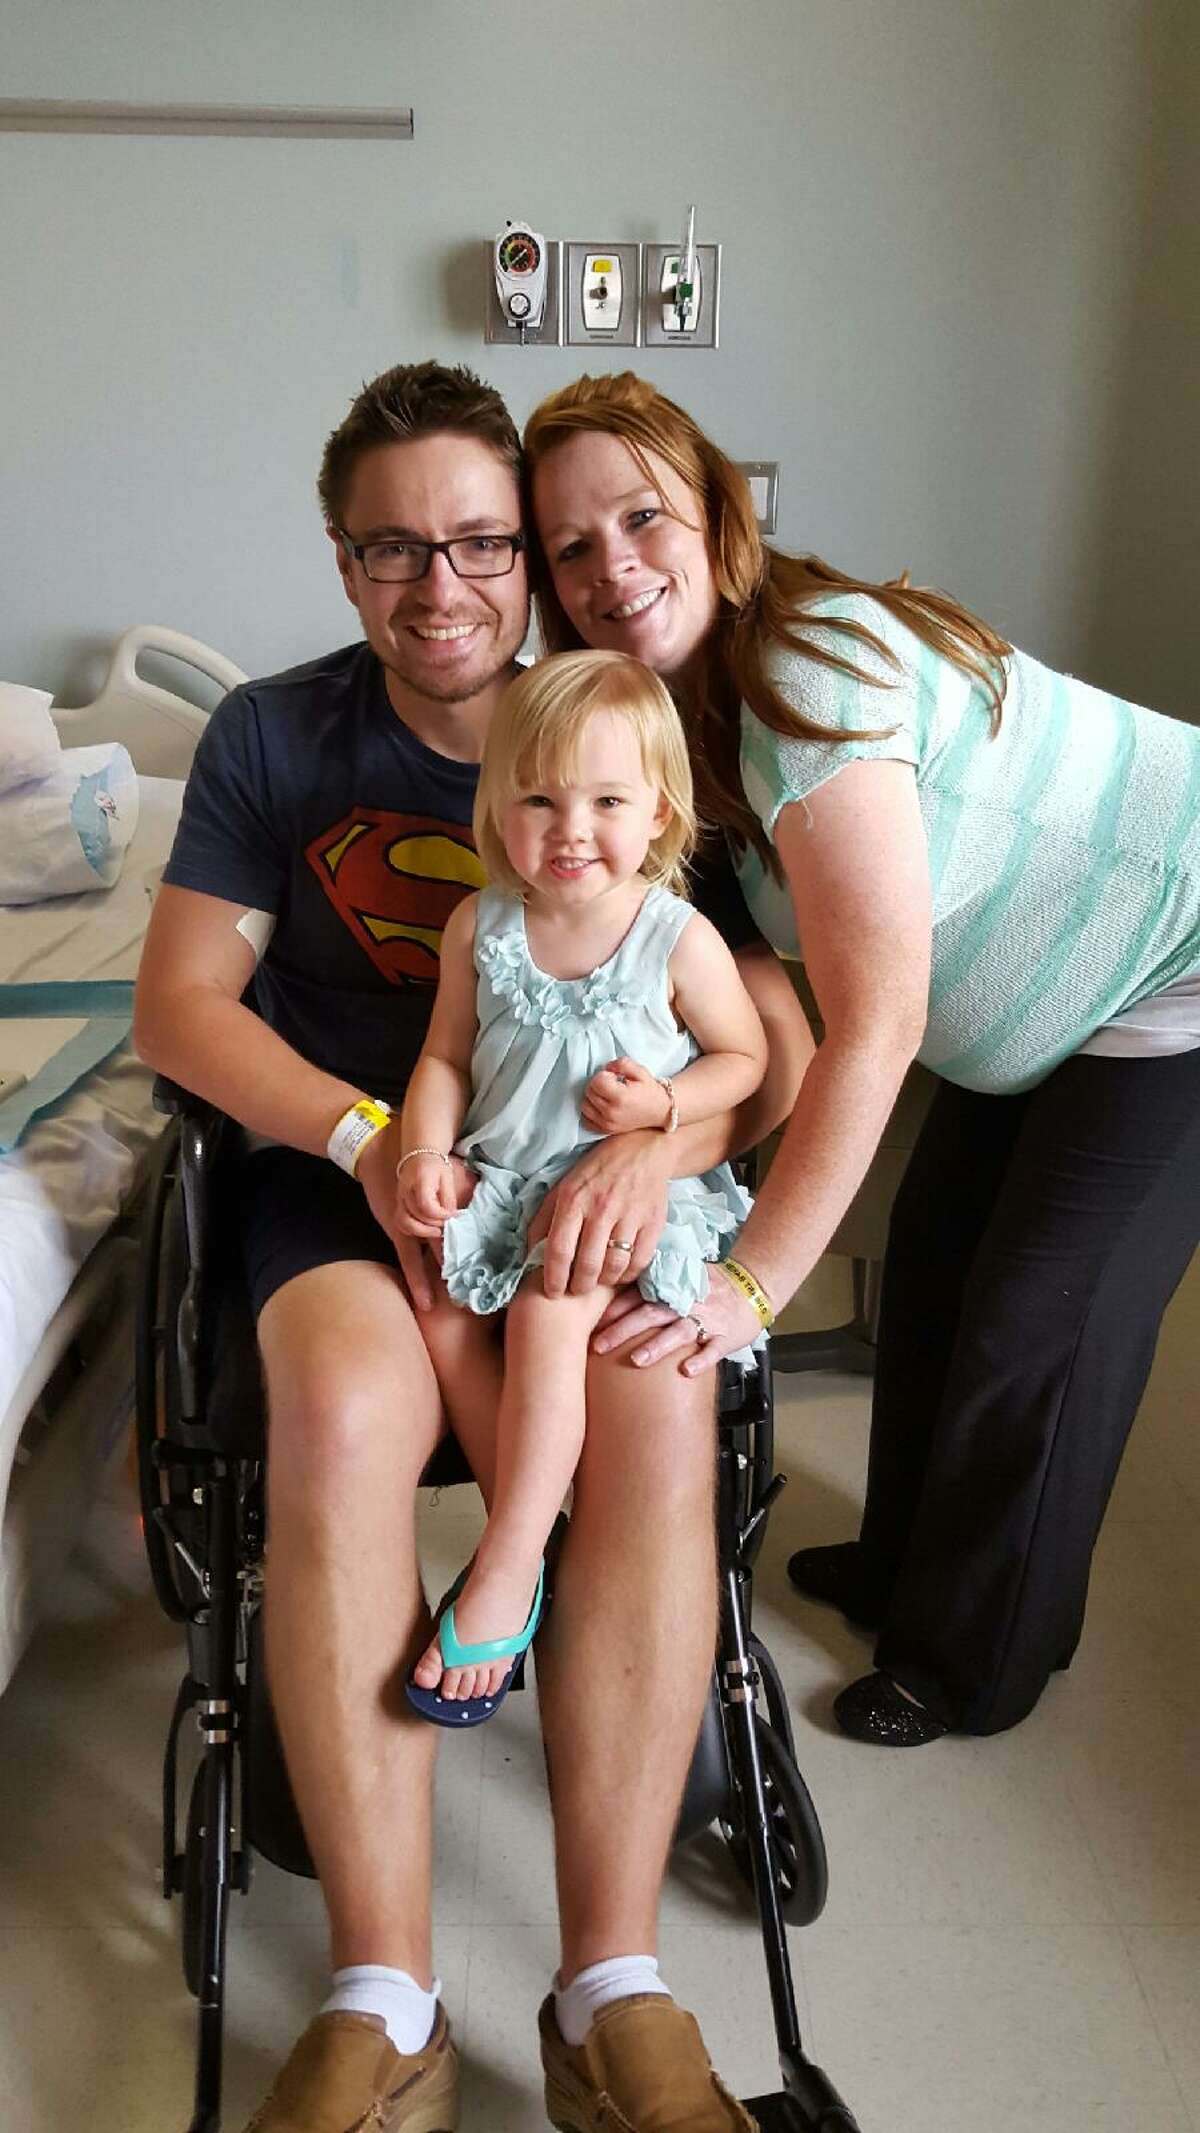 Pasadena Police Lt. Thomas Warnke with his wife, Keleigh, and daughter, Scarlett, on Easter Sunday at The Institute for Rehabilitation and Research at Memorial Hermann in the Texas Medical Center. Warnke was undergoing rehabilitation treatment for transverse myelitis, a neurological disorder that had suddenly paralyzed him from the waist down.